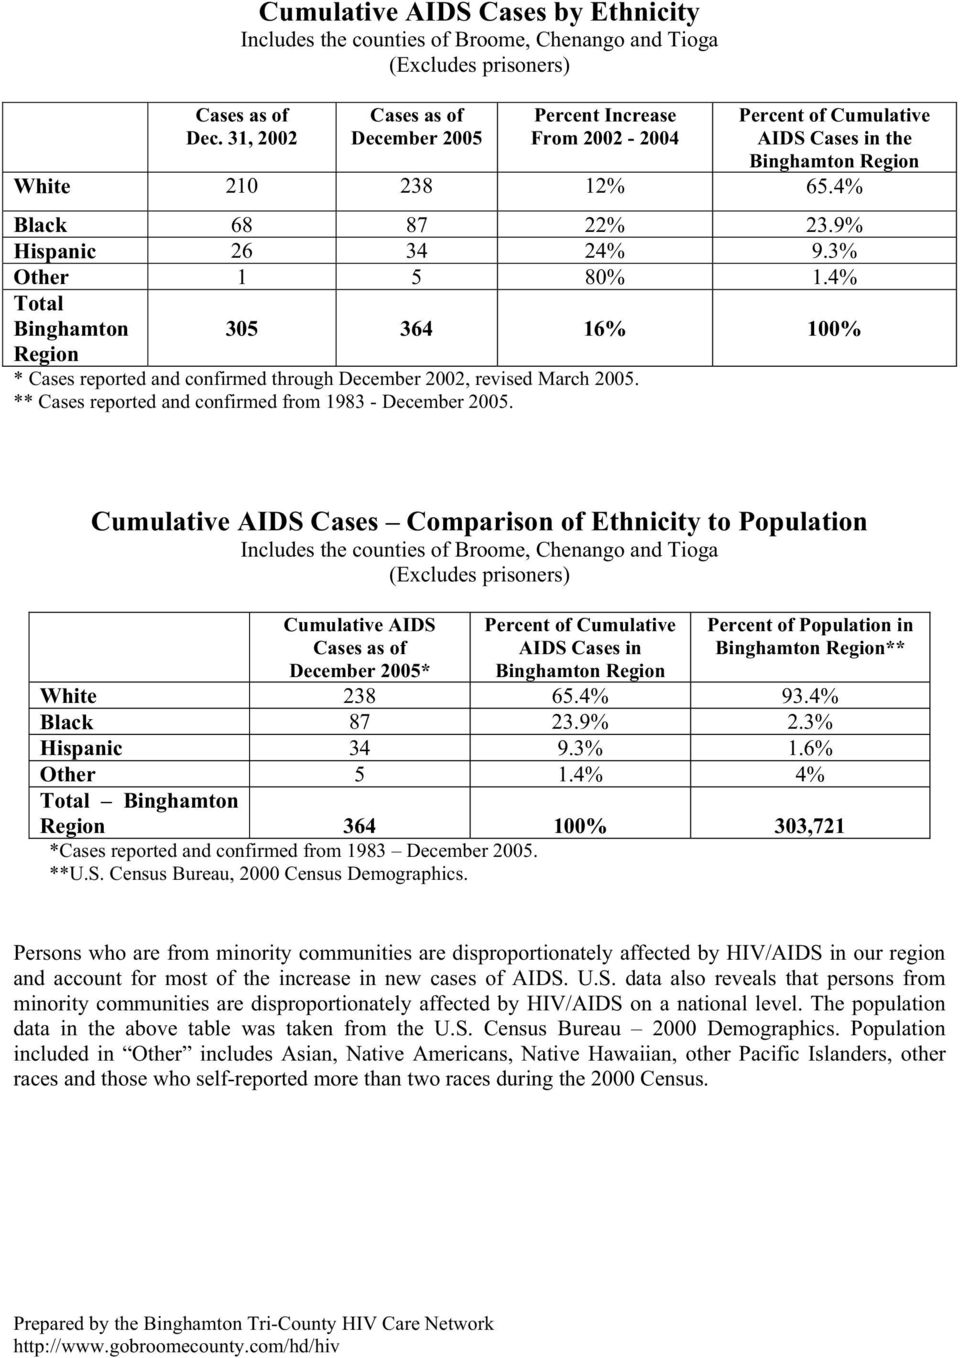 AIDS Cases Comparison of Ethnicity to Population AIDS 2005* Percent of AIDS Cases in Percent of Population in ** White 238 65.4% 93.4% Black 87 23.9% 2.3% Hispanic 34 9.3% 1.6% Other 5 1.